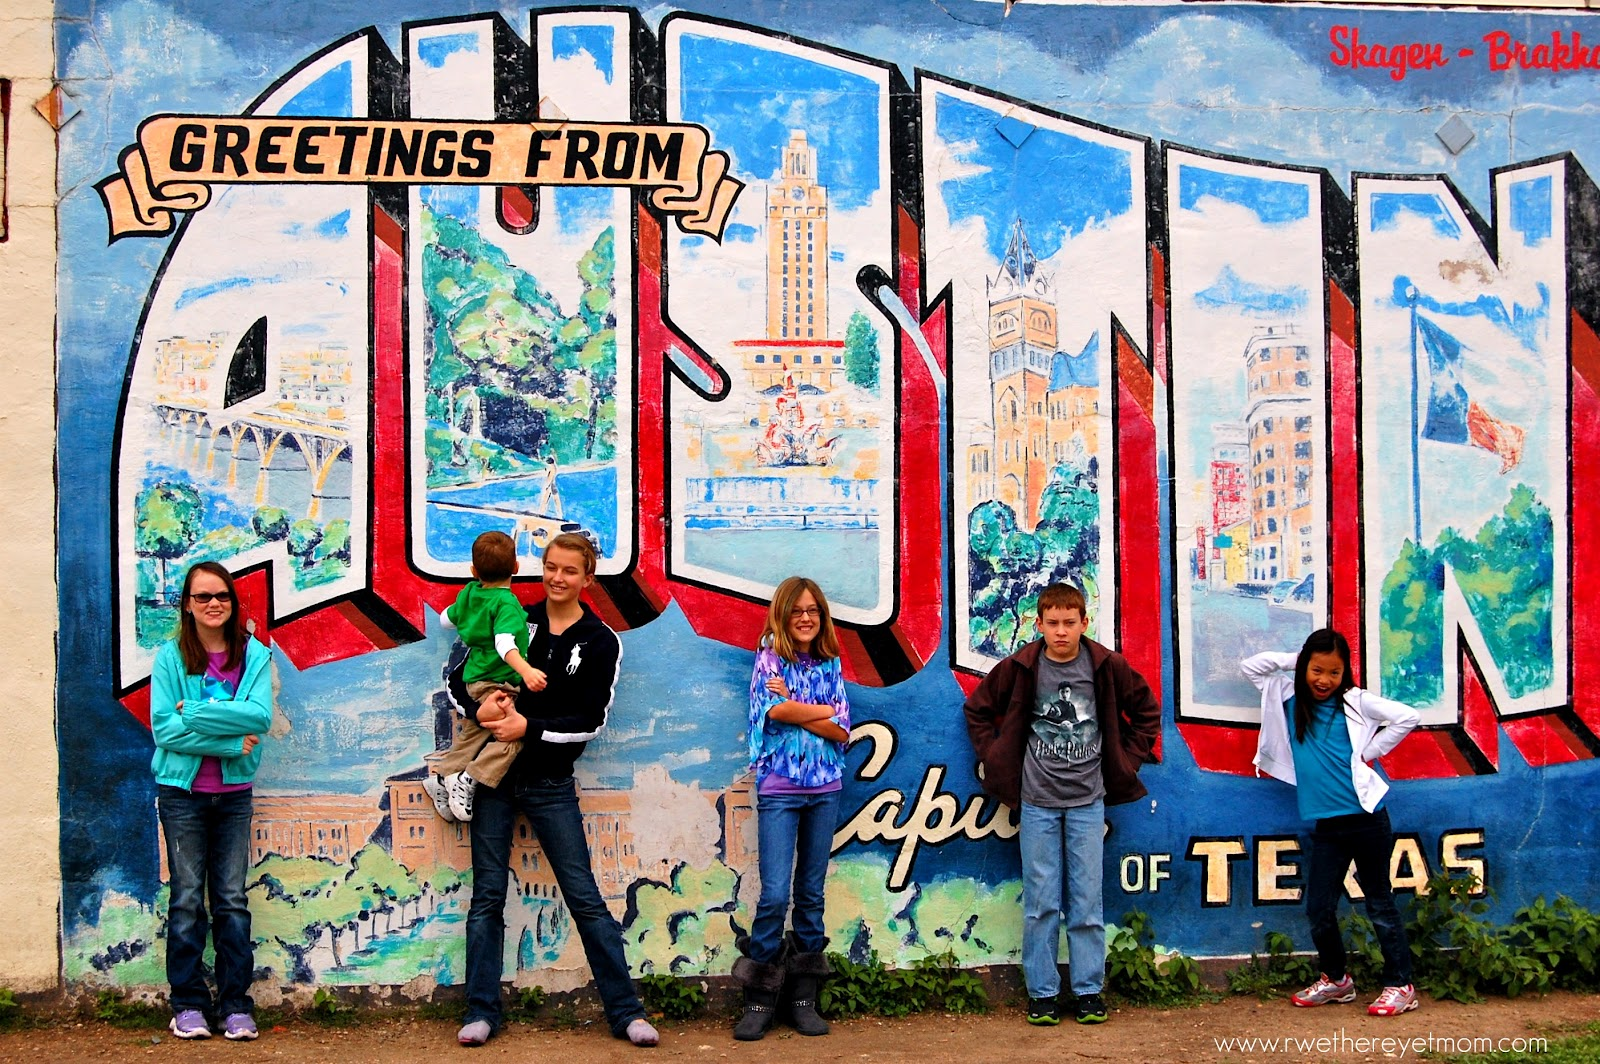 Greetings from austin murals in austin texas r we for Austin mural location